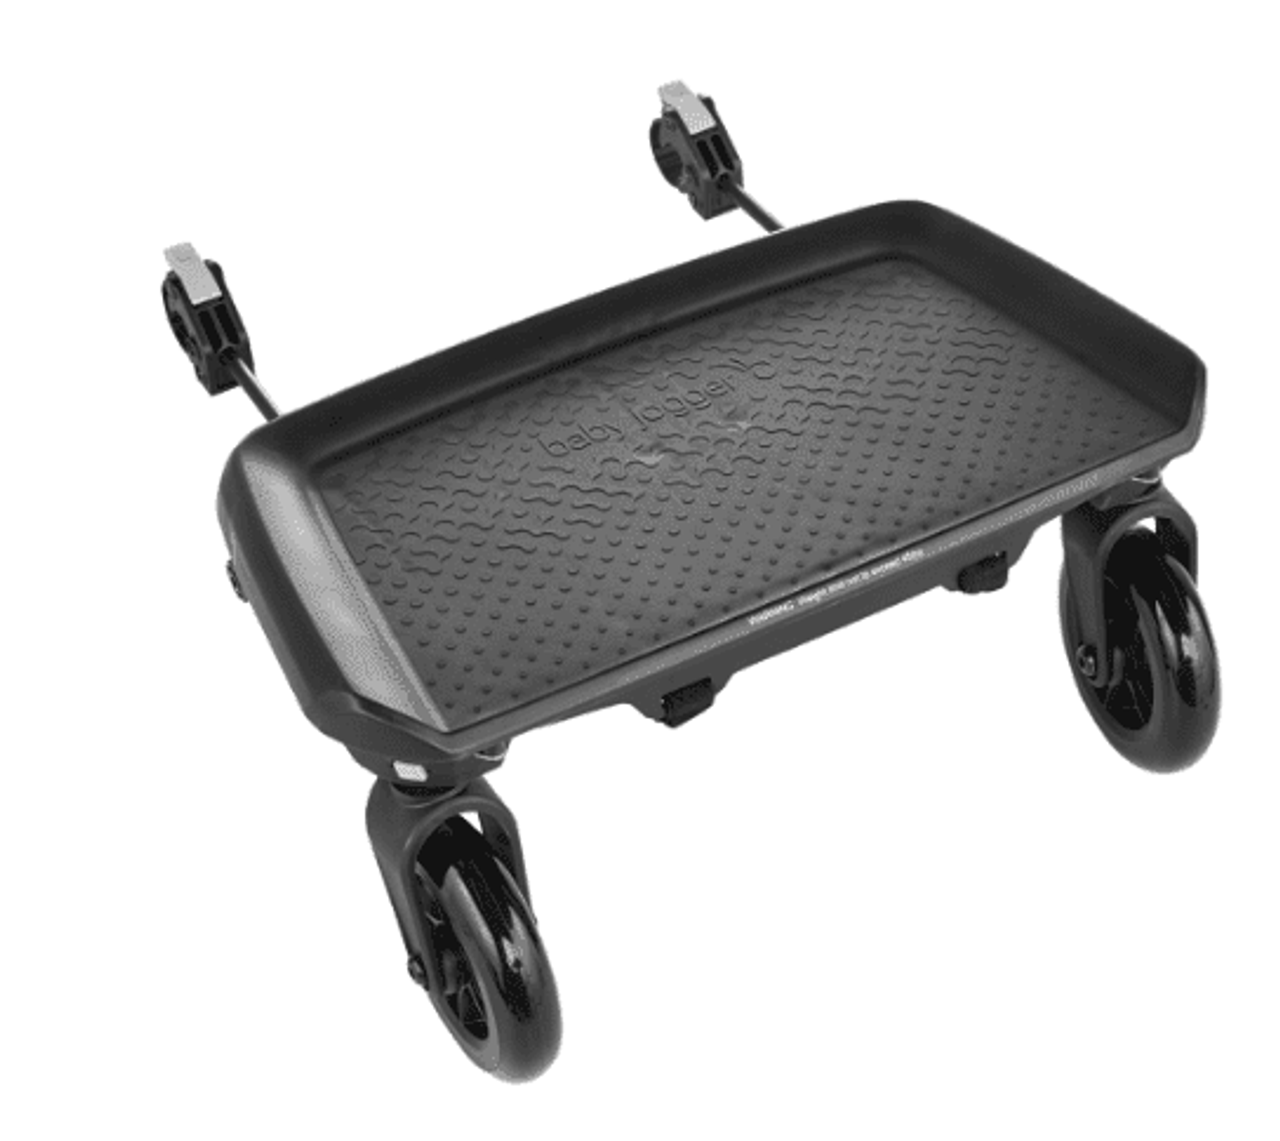 Baby Jogger Glider Board v2 - The Glider Board is a great way to let your older child hitch a ride.